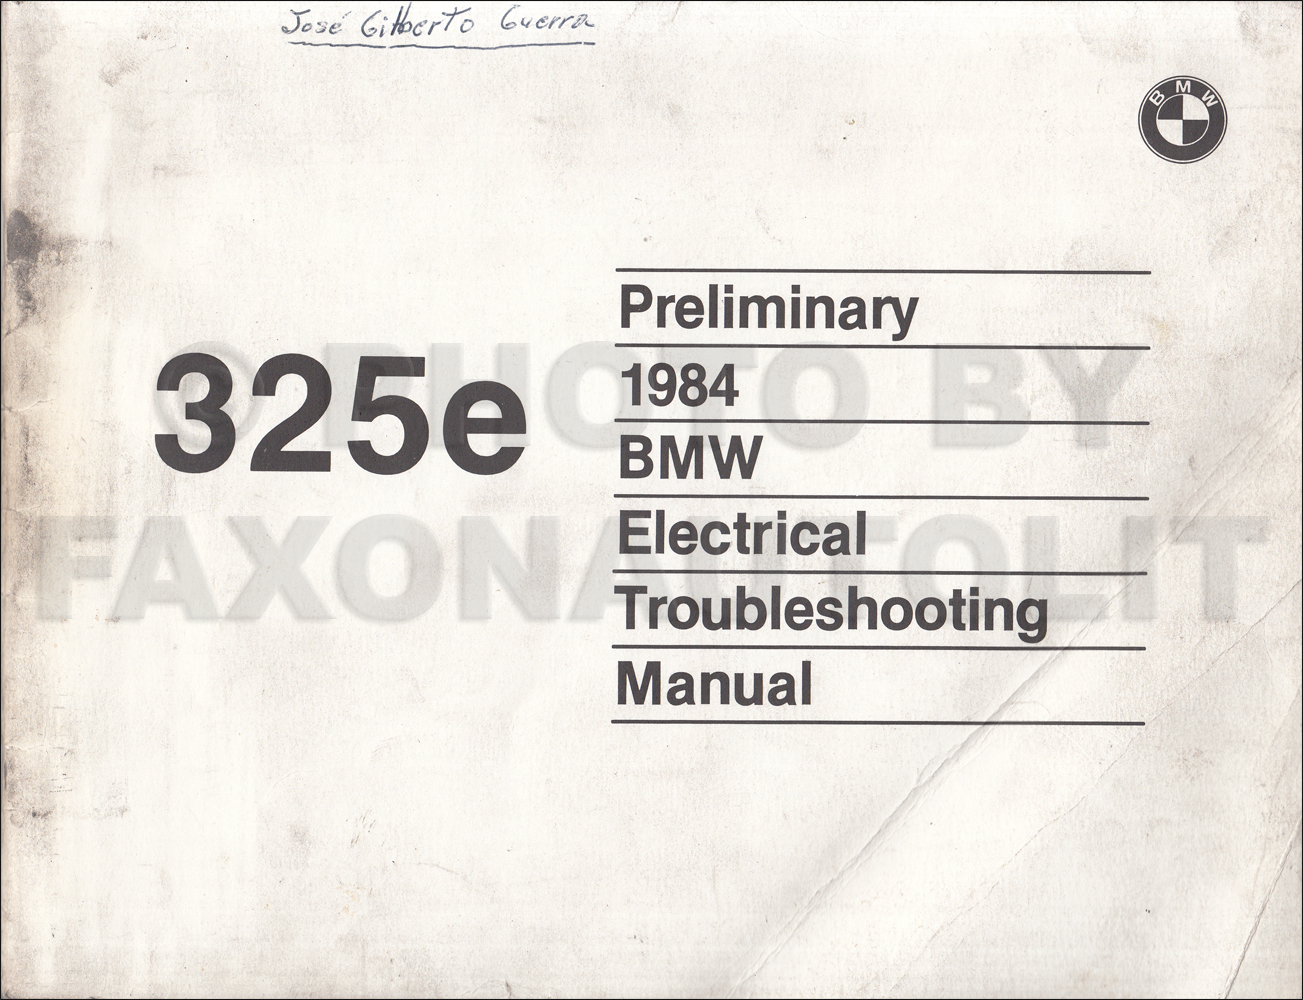 1984 BMW 325e Electrical Troubleshooting Manual Preliminary